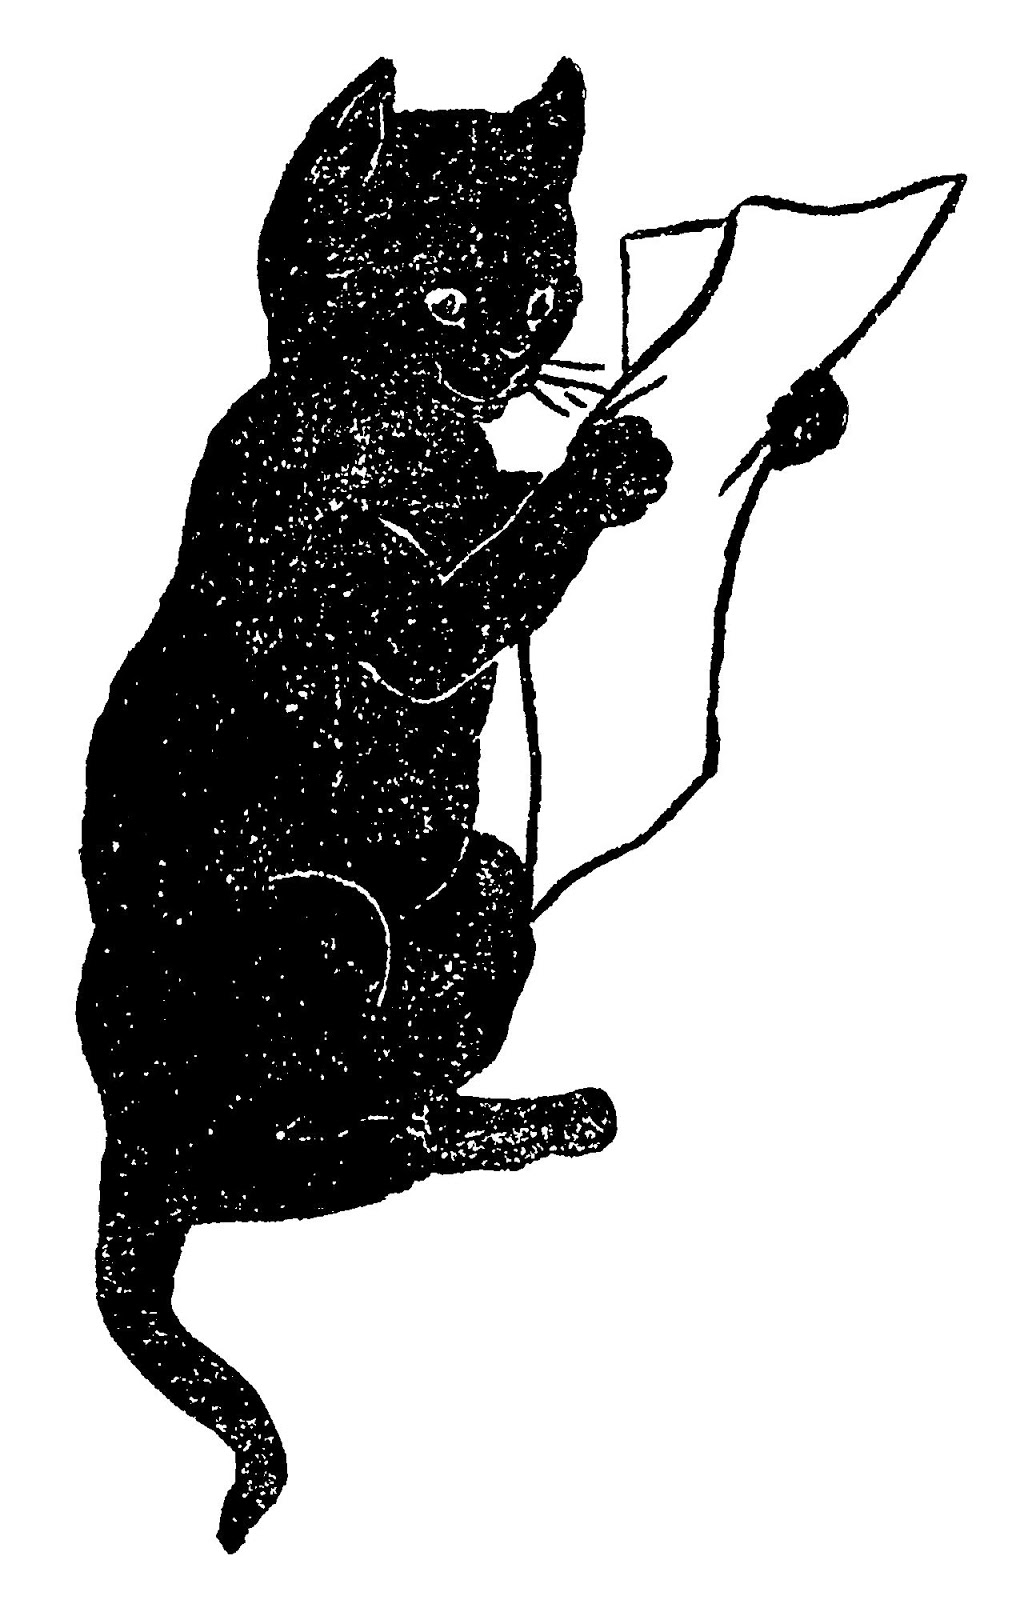 hight resolution of black cat funny clipart image reading paper illustration animal antique